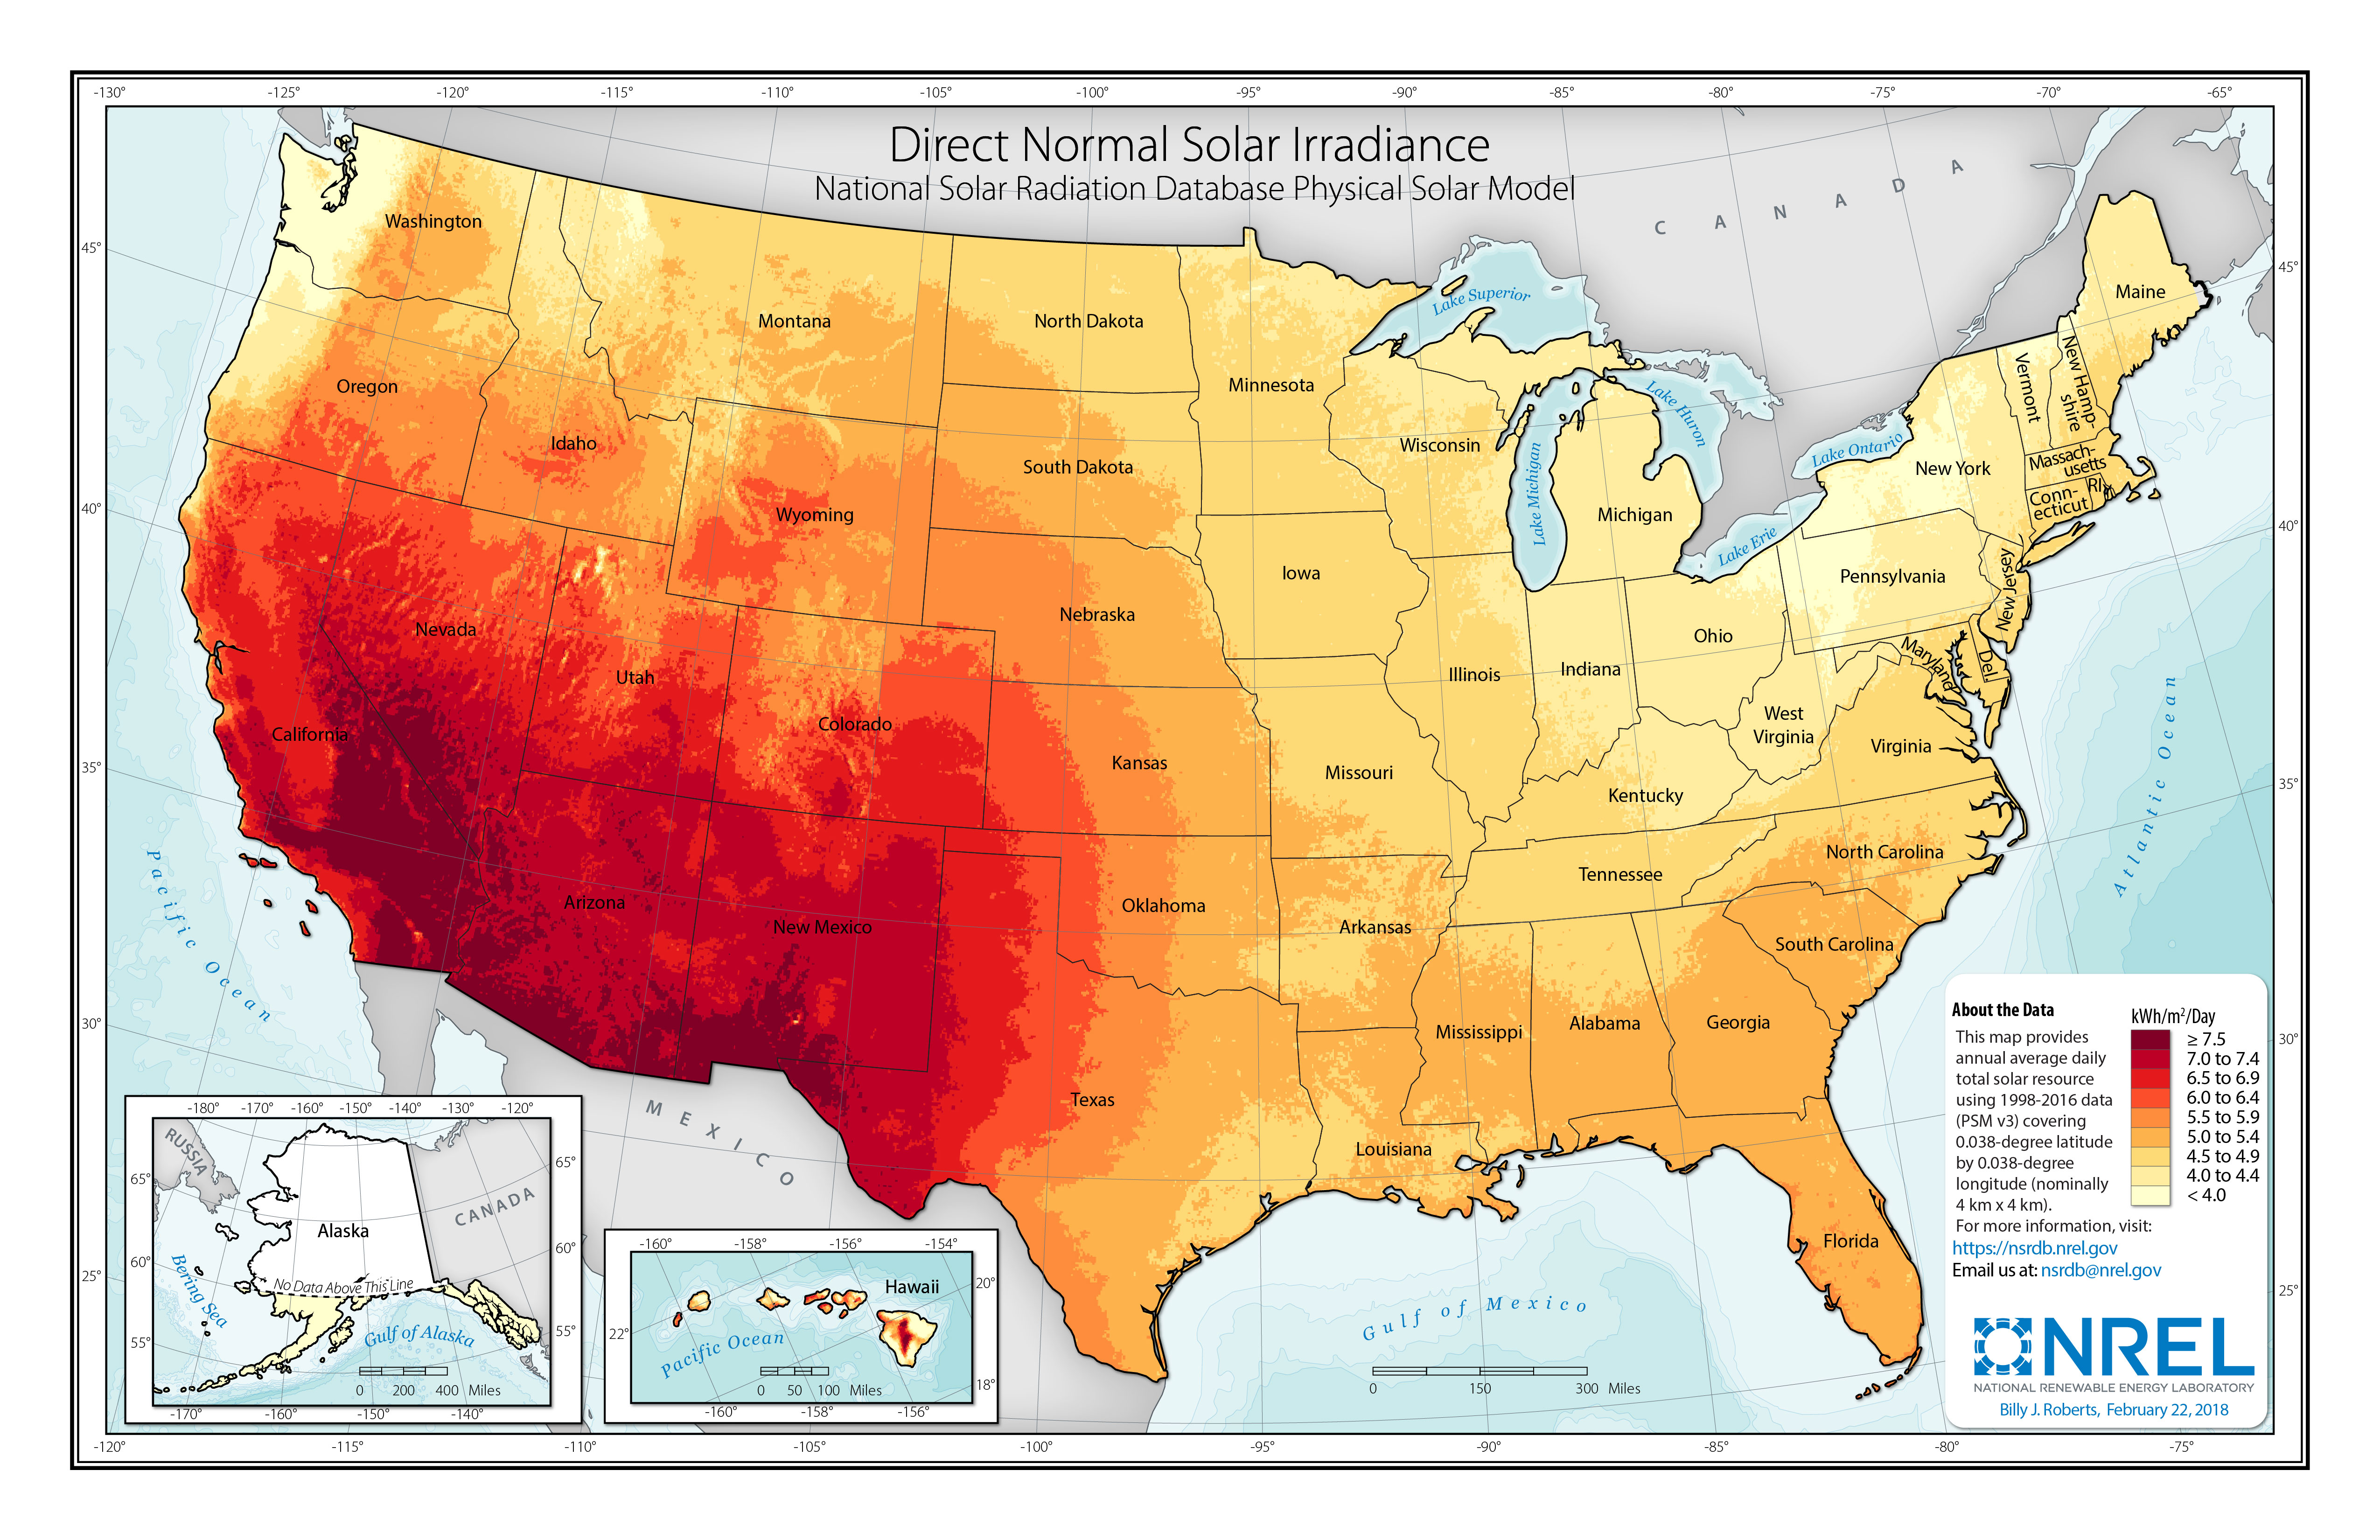 Direct Normal Solar Irradiance Map from NREL